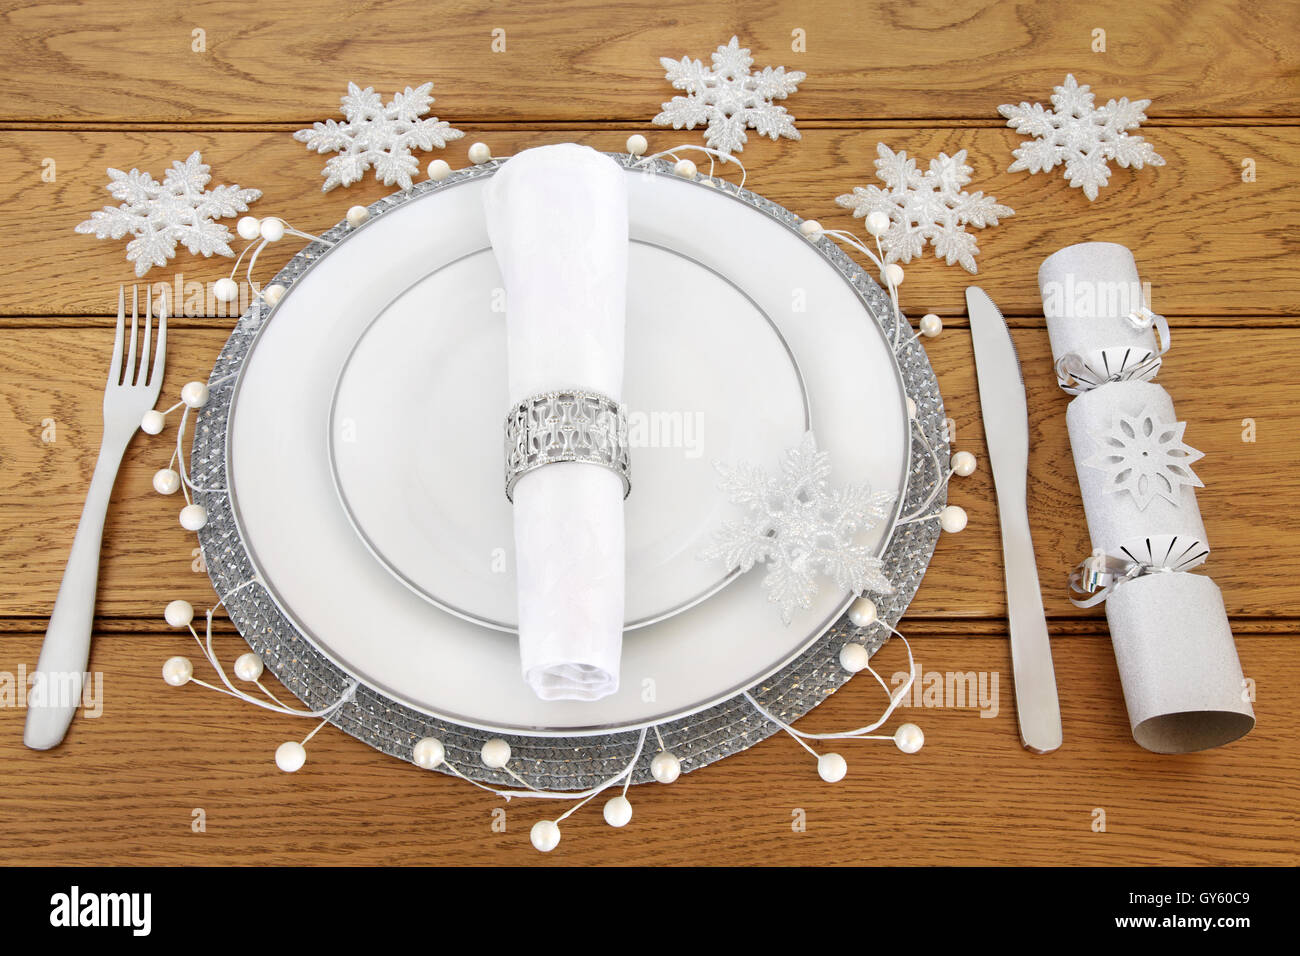 Christmas dinner table setting with white porcelain plates, cutlery ...